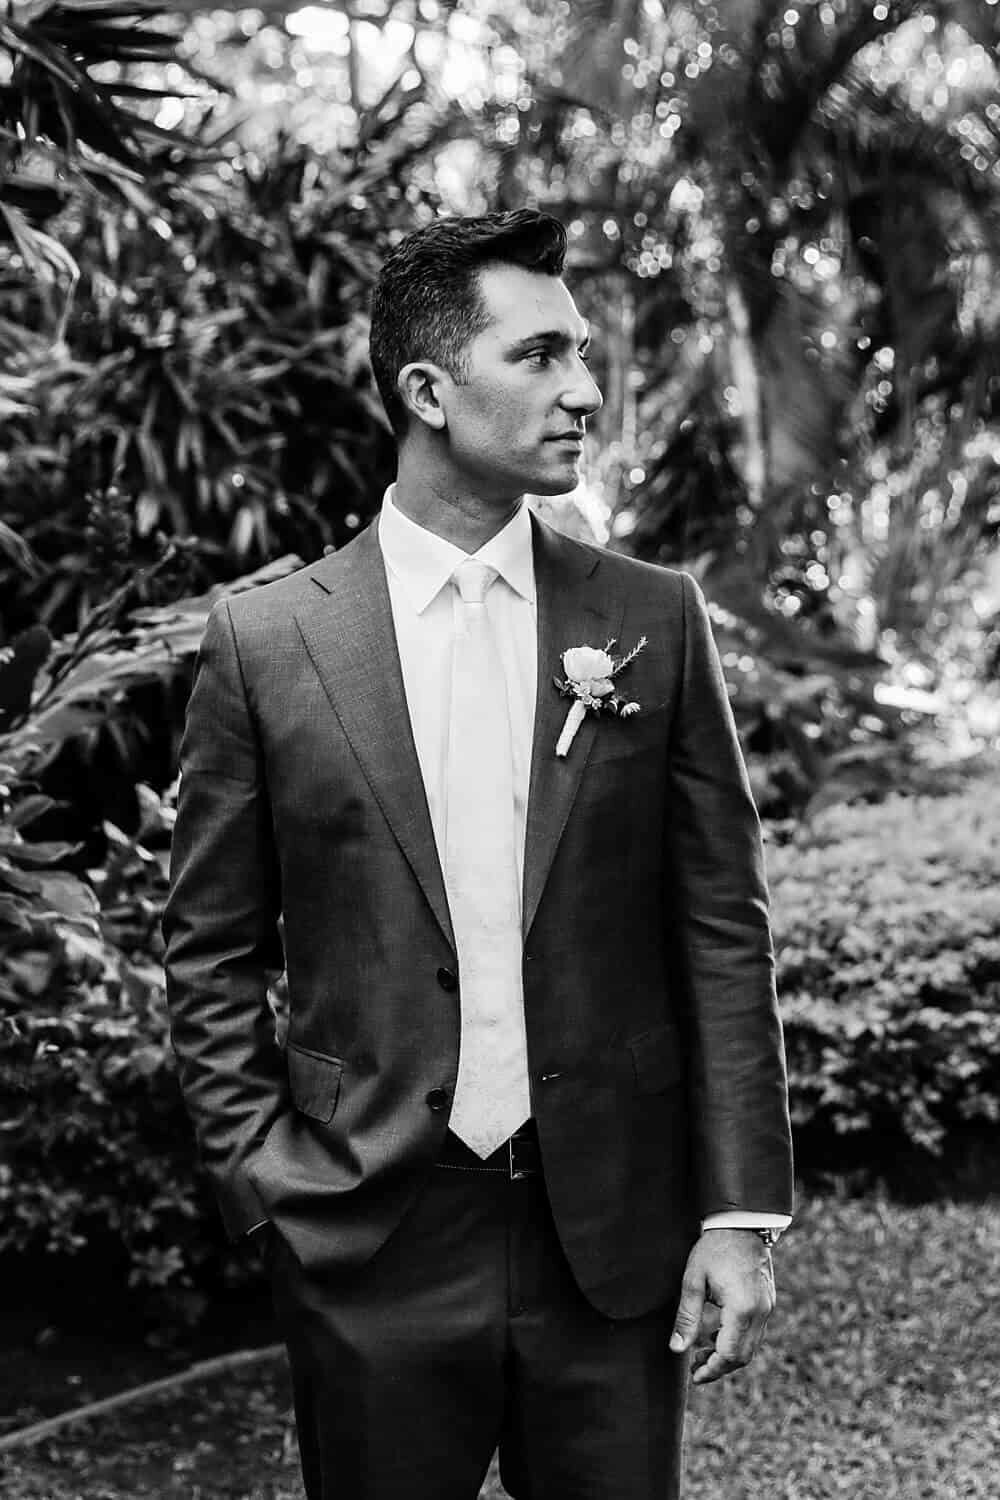 Maui portrait of groom on this wedding day